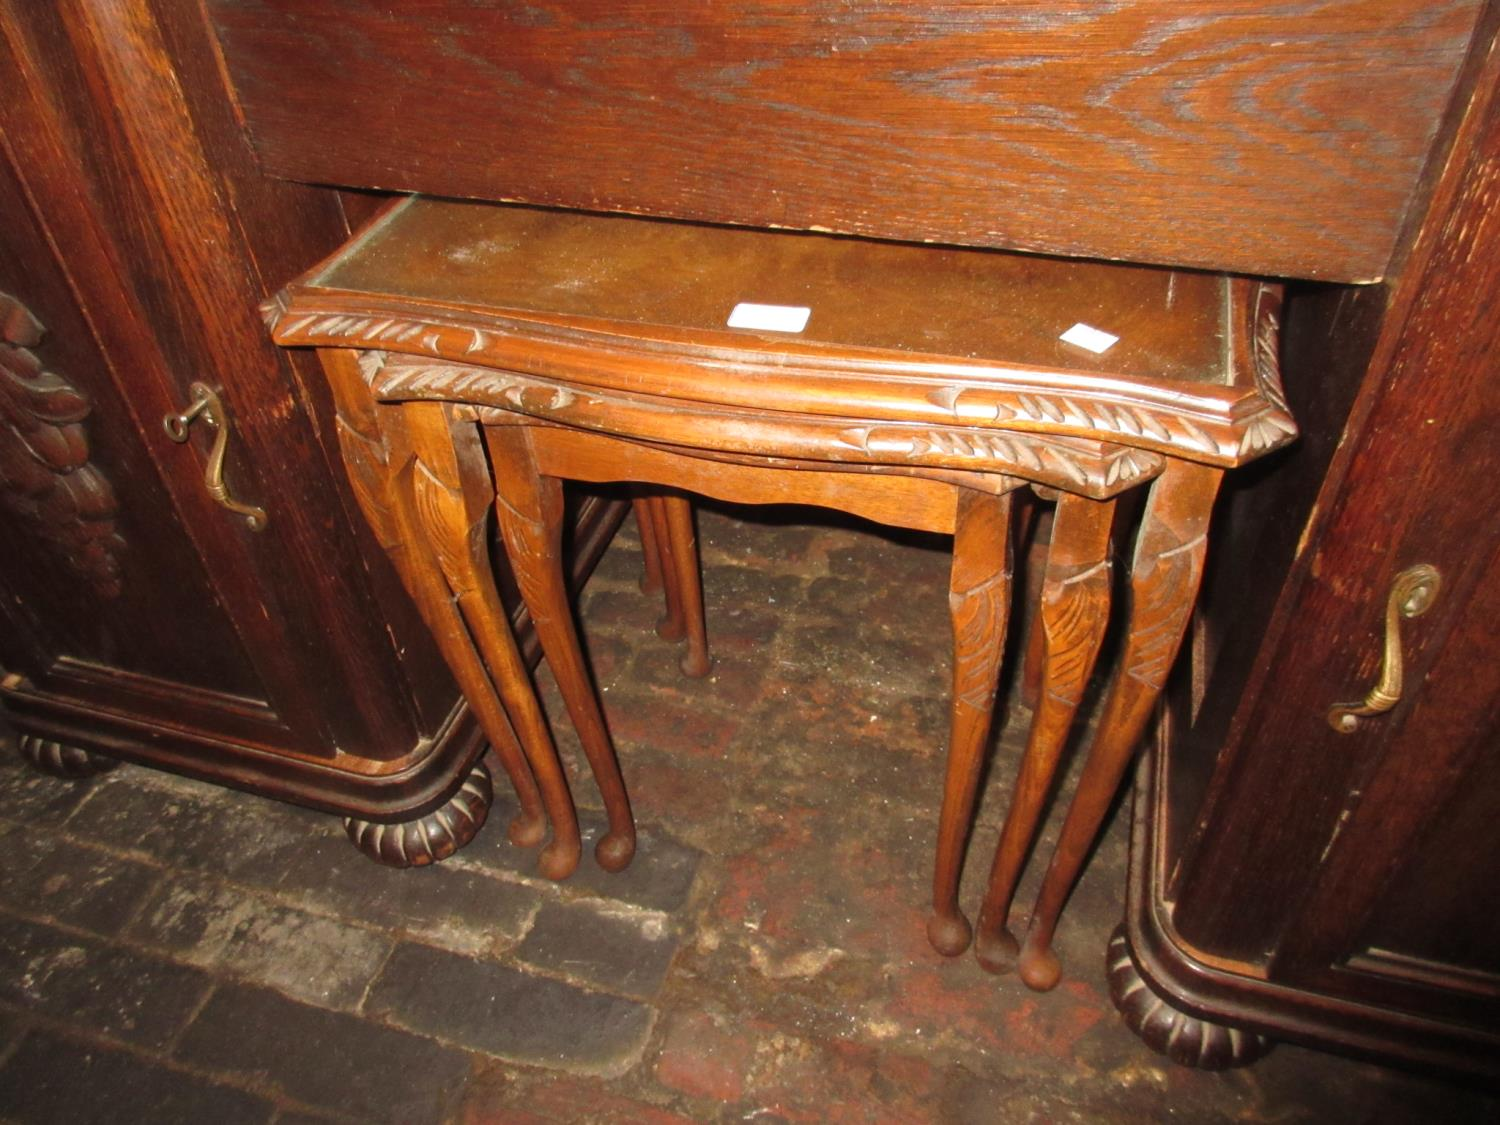 Pair of reproduction oak bedside cabinets with moulded panel doors and canted corners, together with - Image 2 of 2